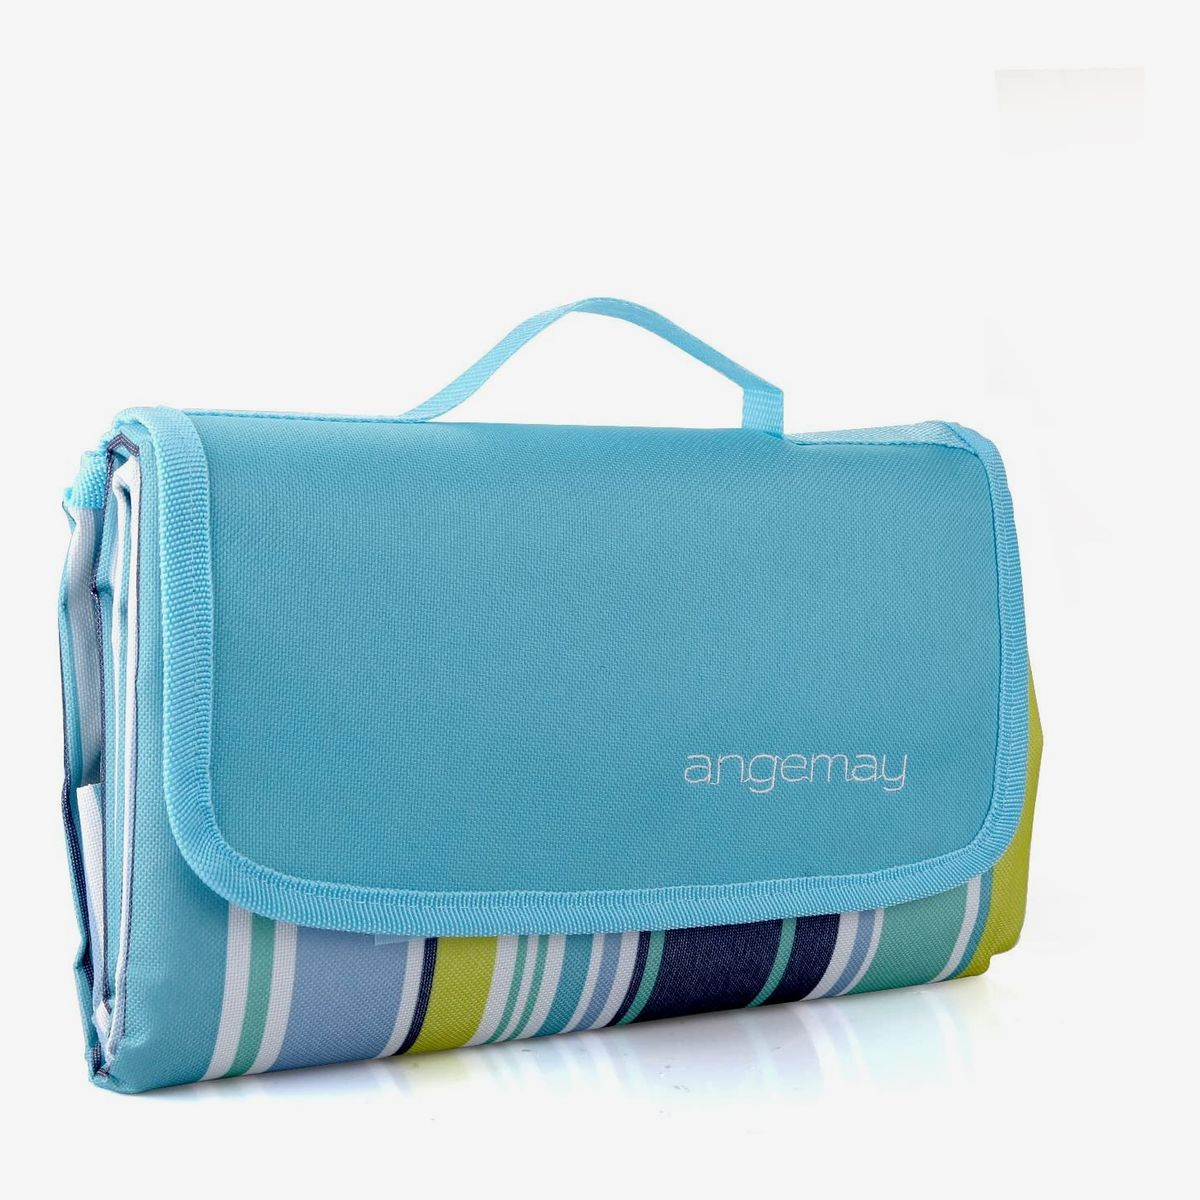 A waterproof picnic blanket with blue and green stripes